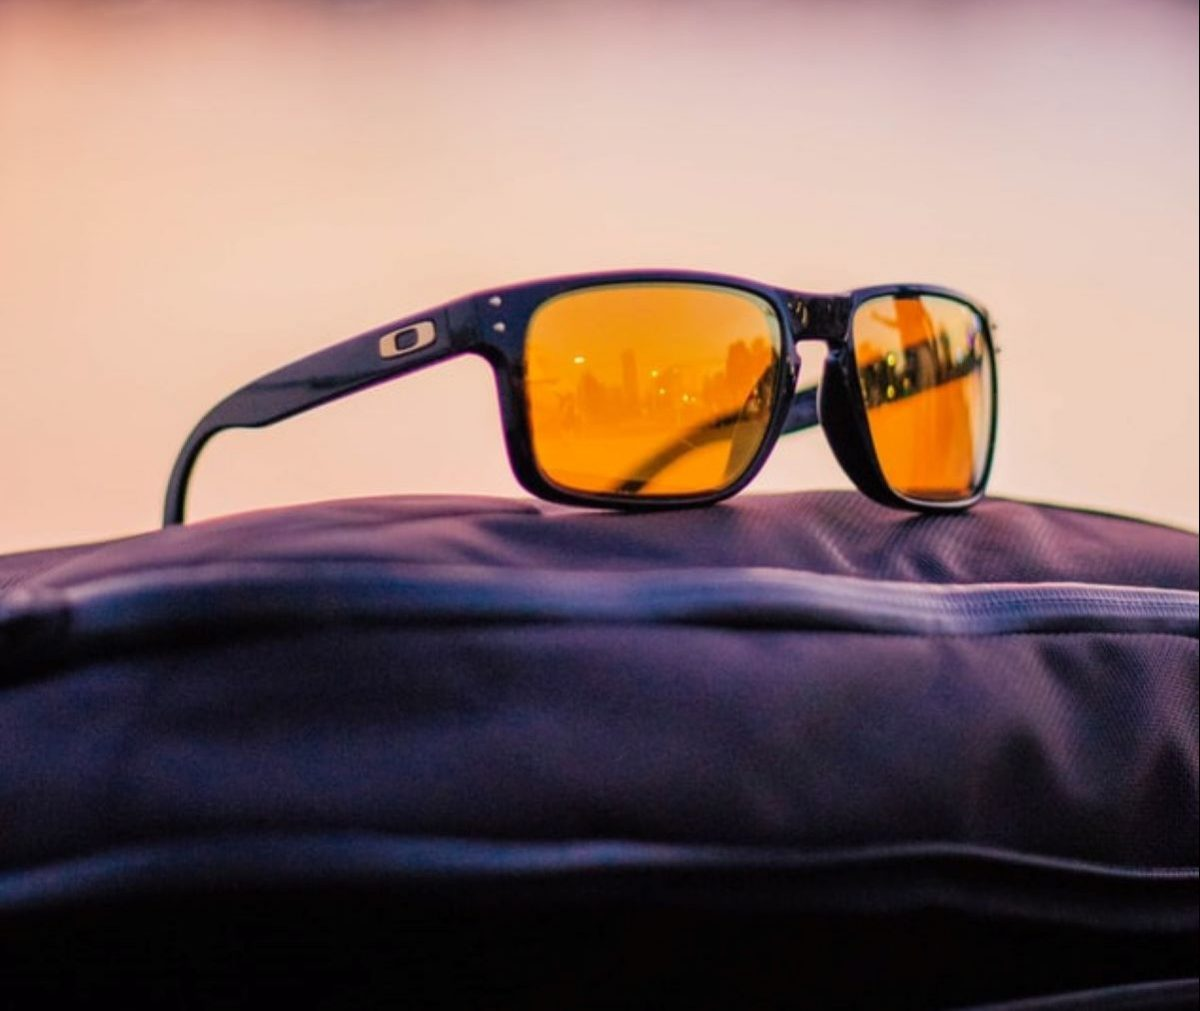 Feature Image Tyrel Johnson Unsplash e1562765663343 - Top 5 Oakley Sunglasses to Consider Buying